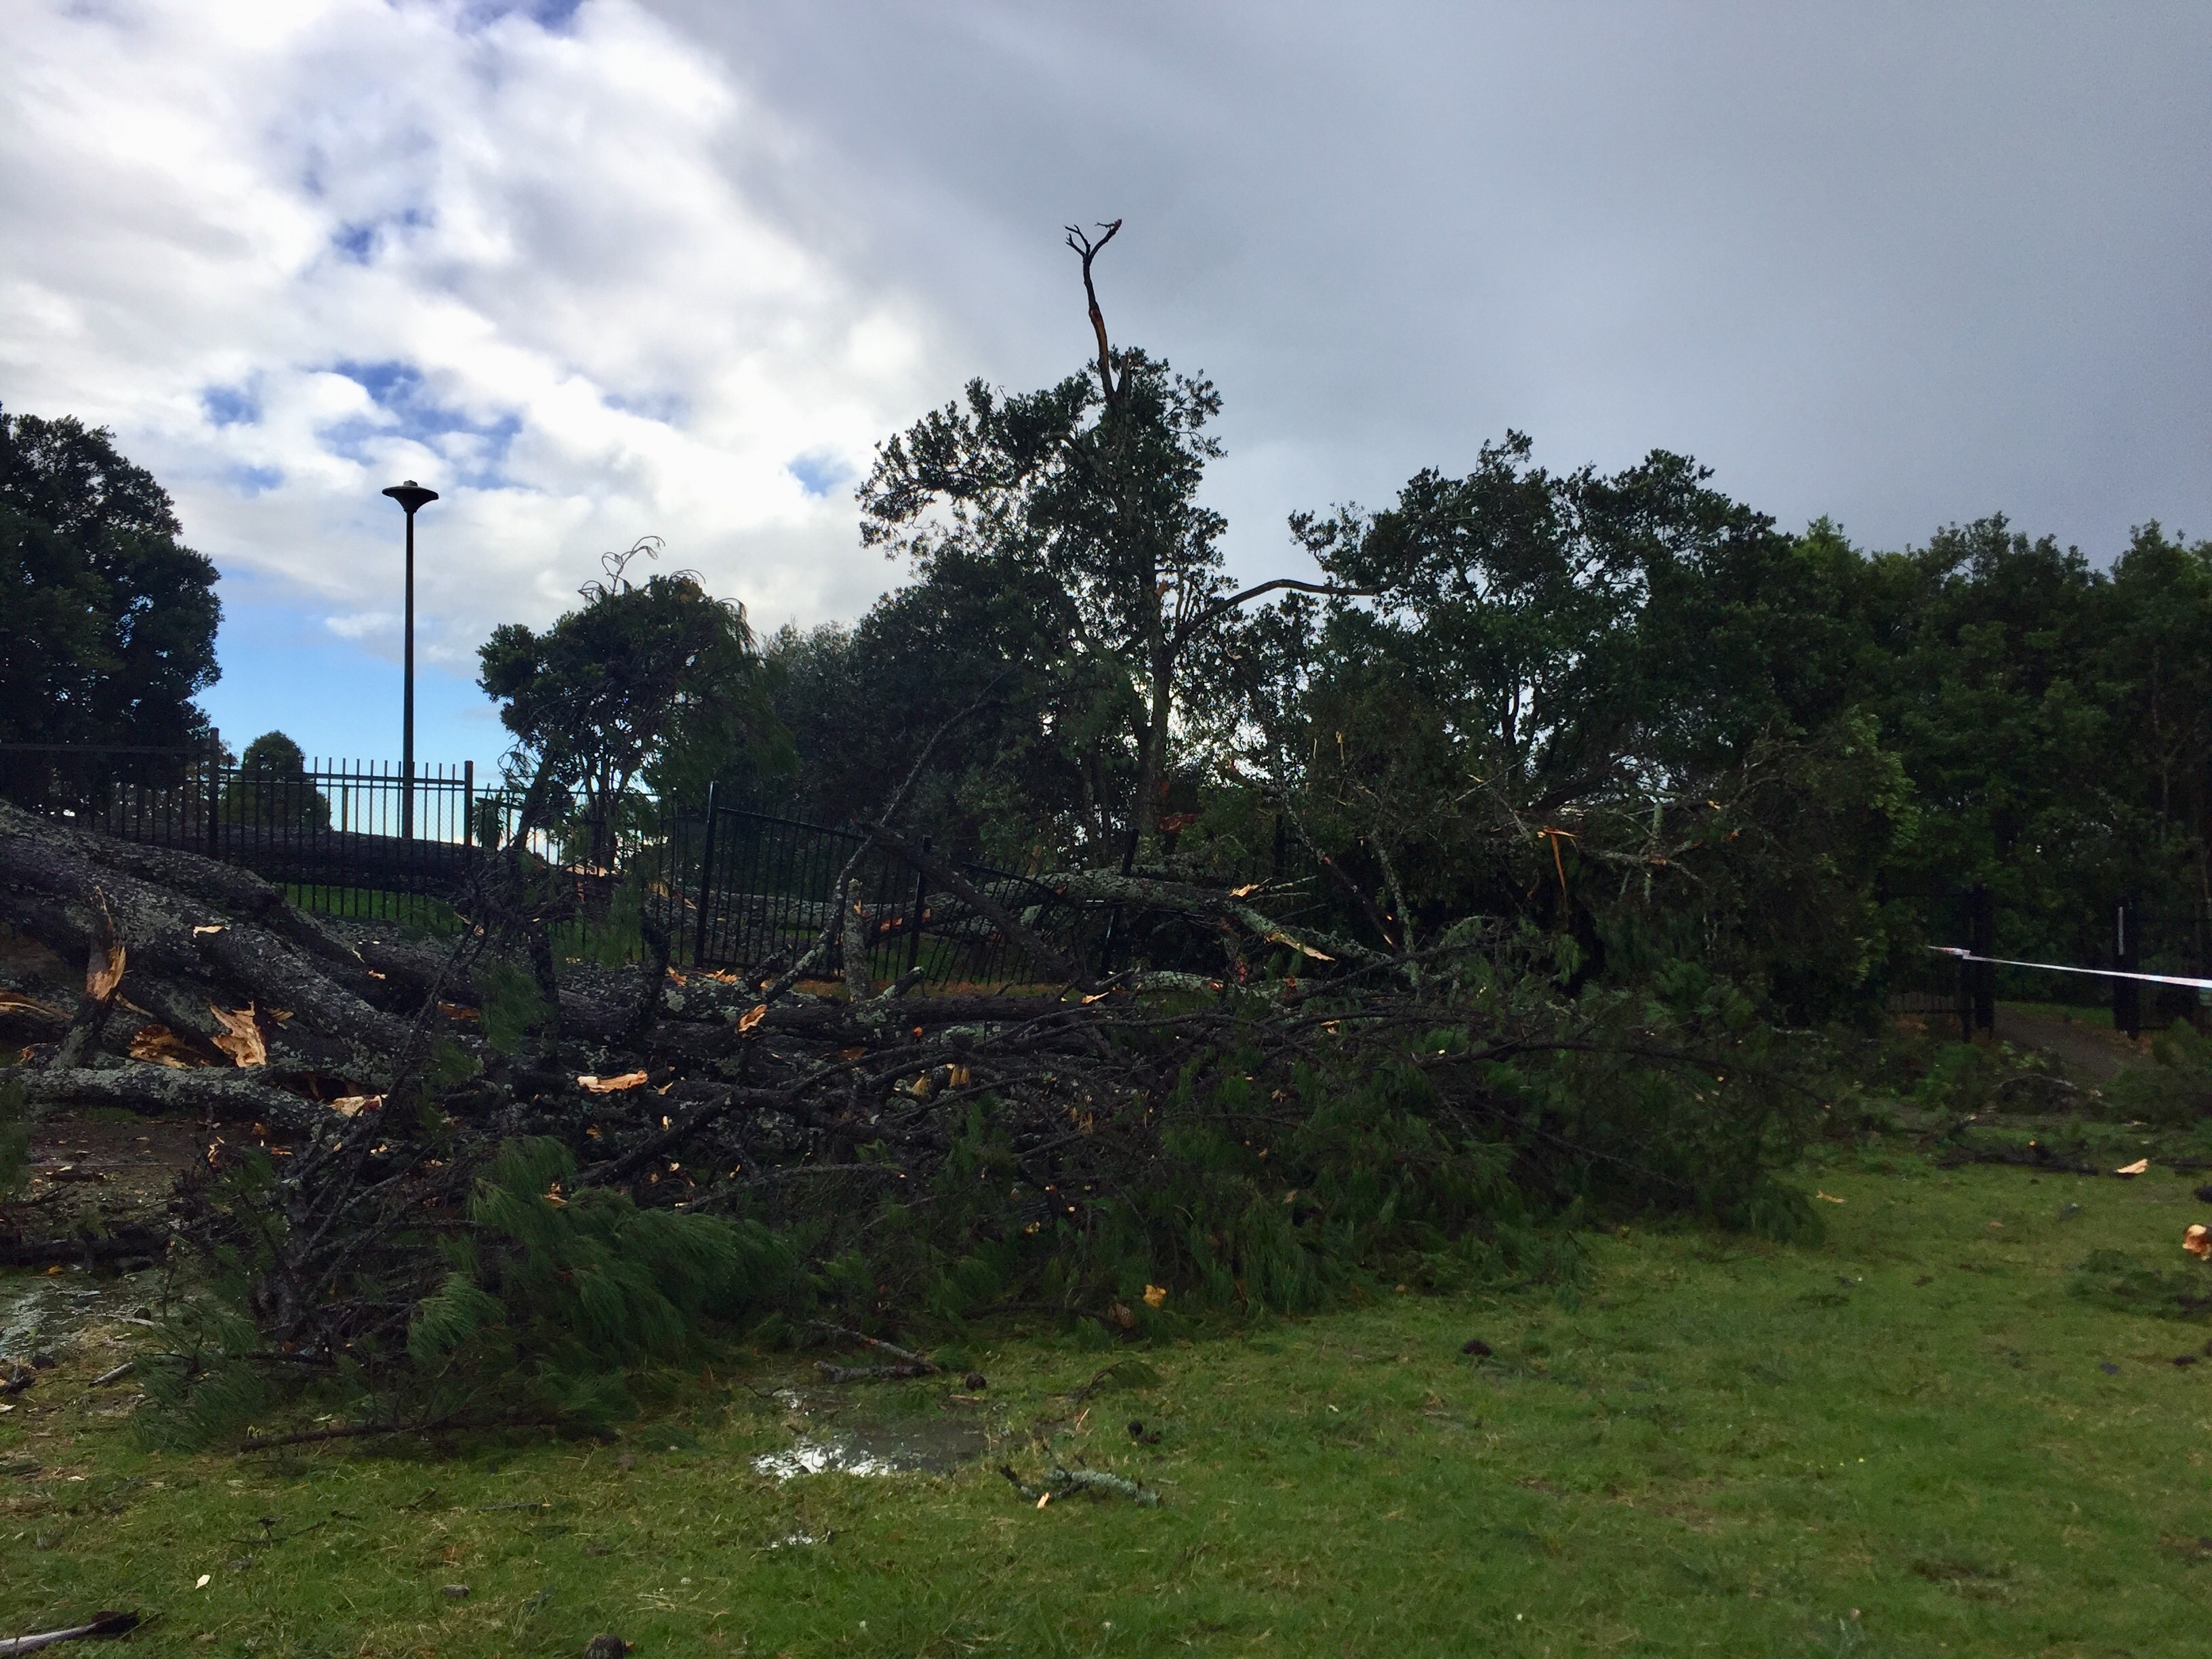 Blockhouse Bay Primary School - DESTRUCTION!